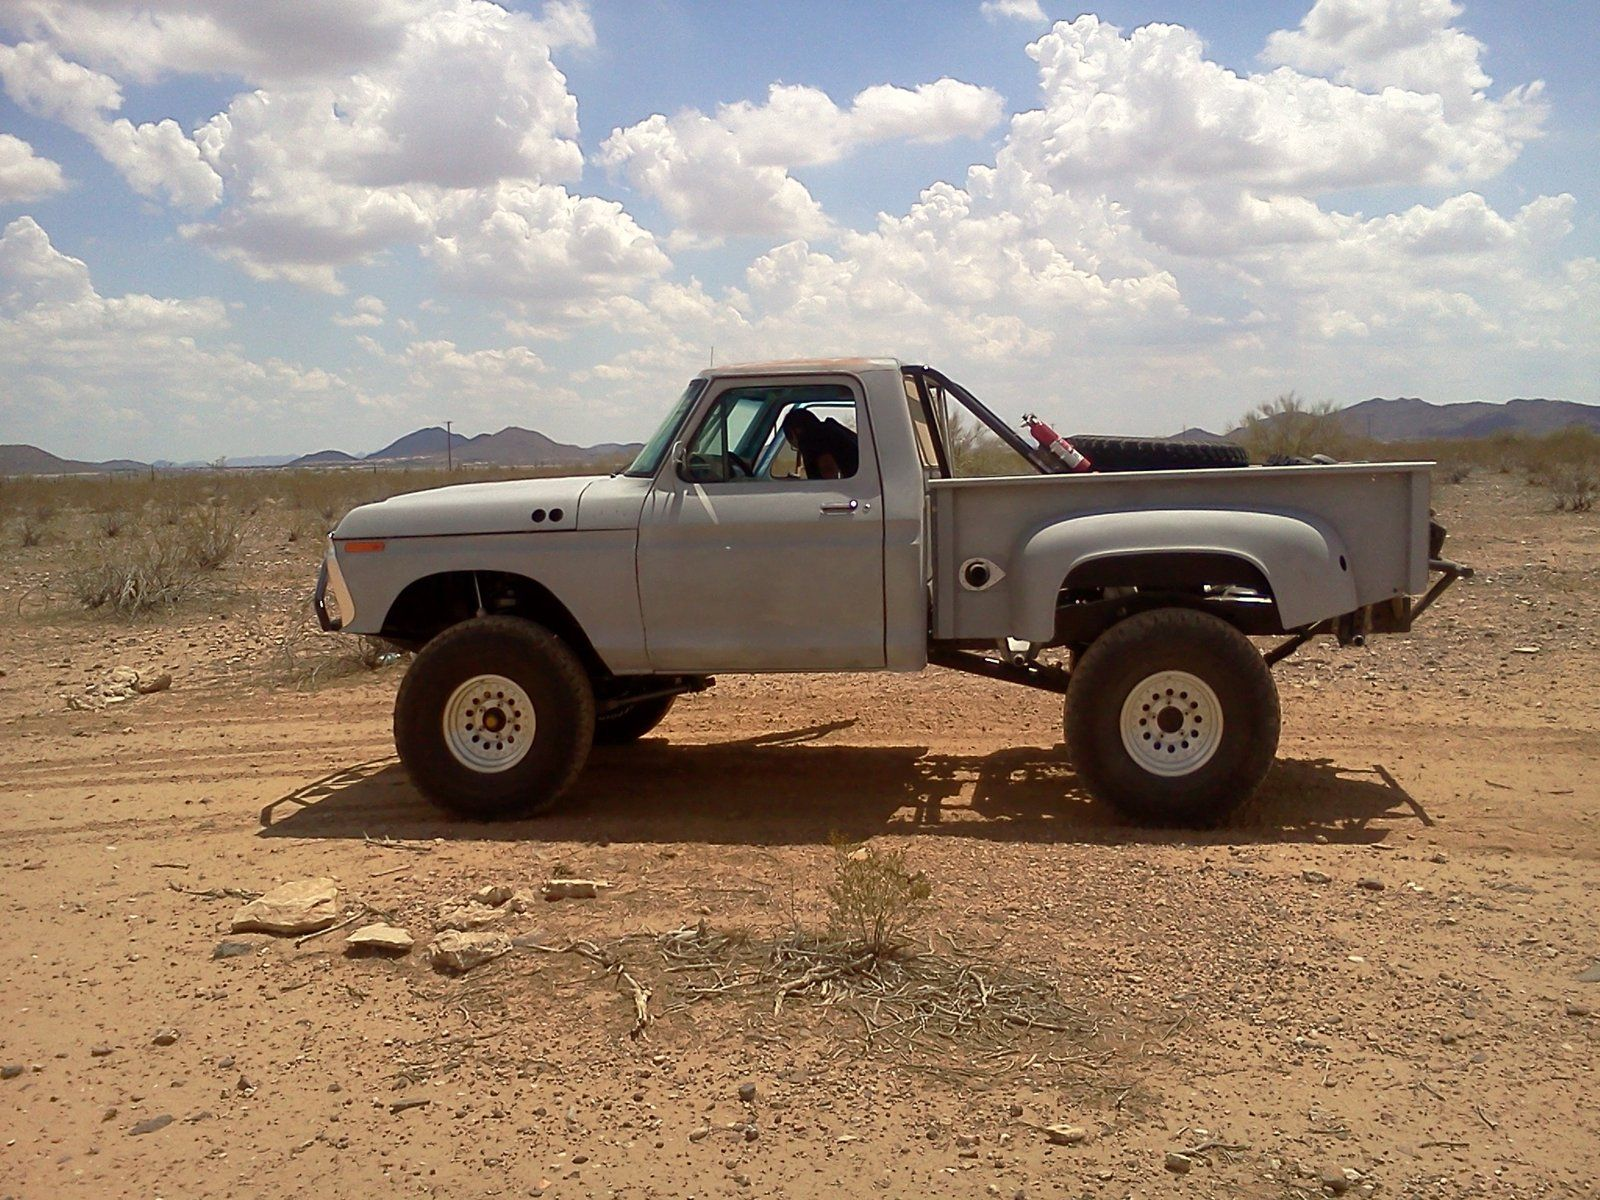 1955 ford f100 trucks for sale used cars on oodle autos post - 1970 S Ford F 100 Prerunner Build Maintenance Restoration Of Old Vintage Vehicles